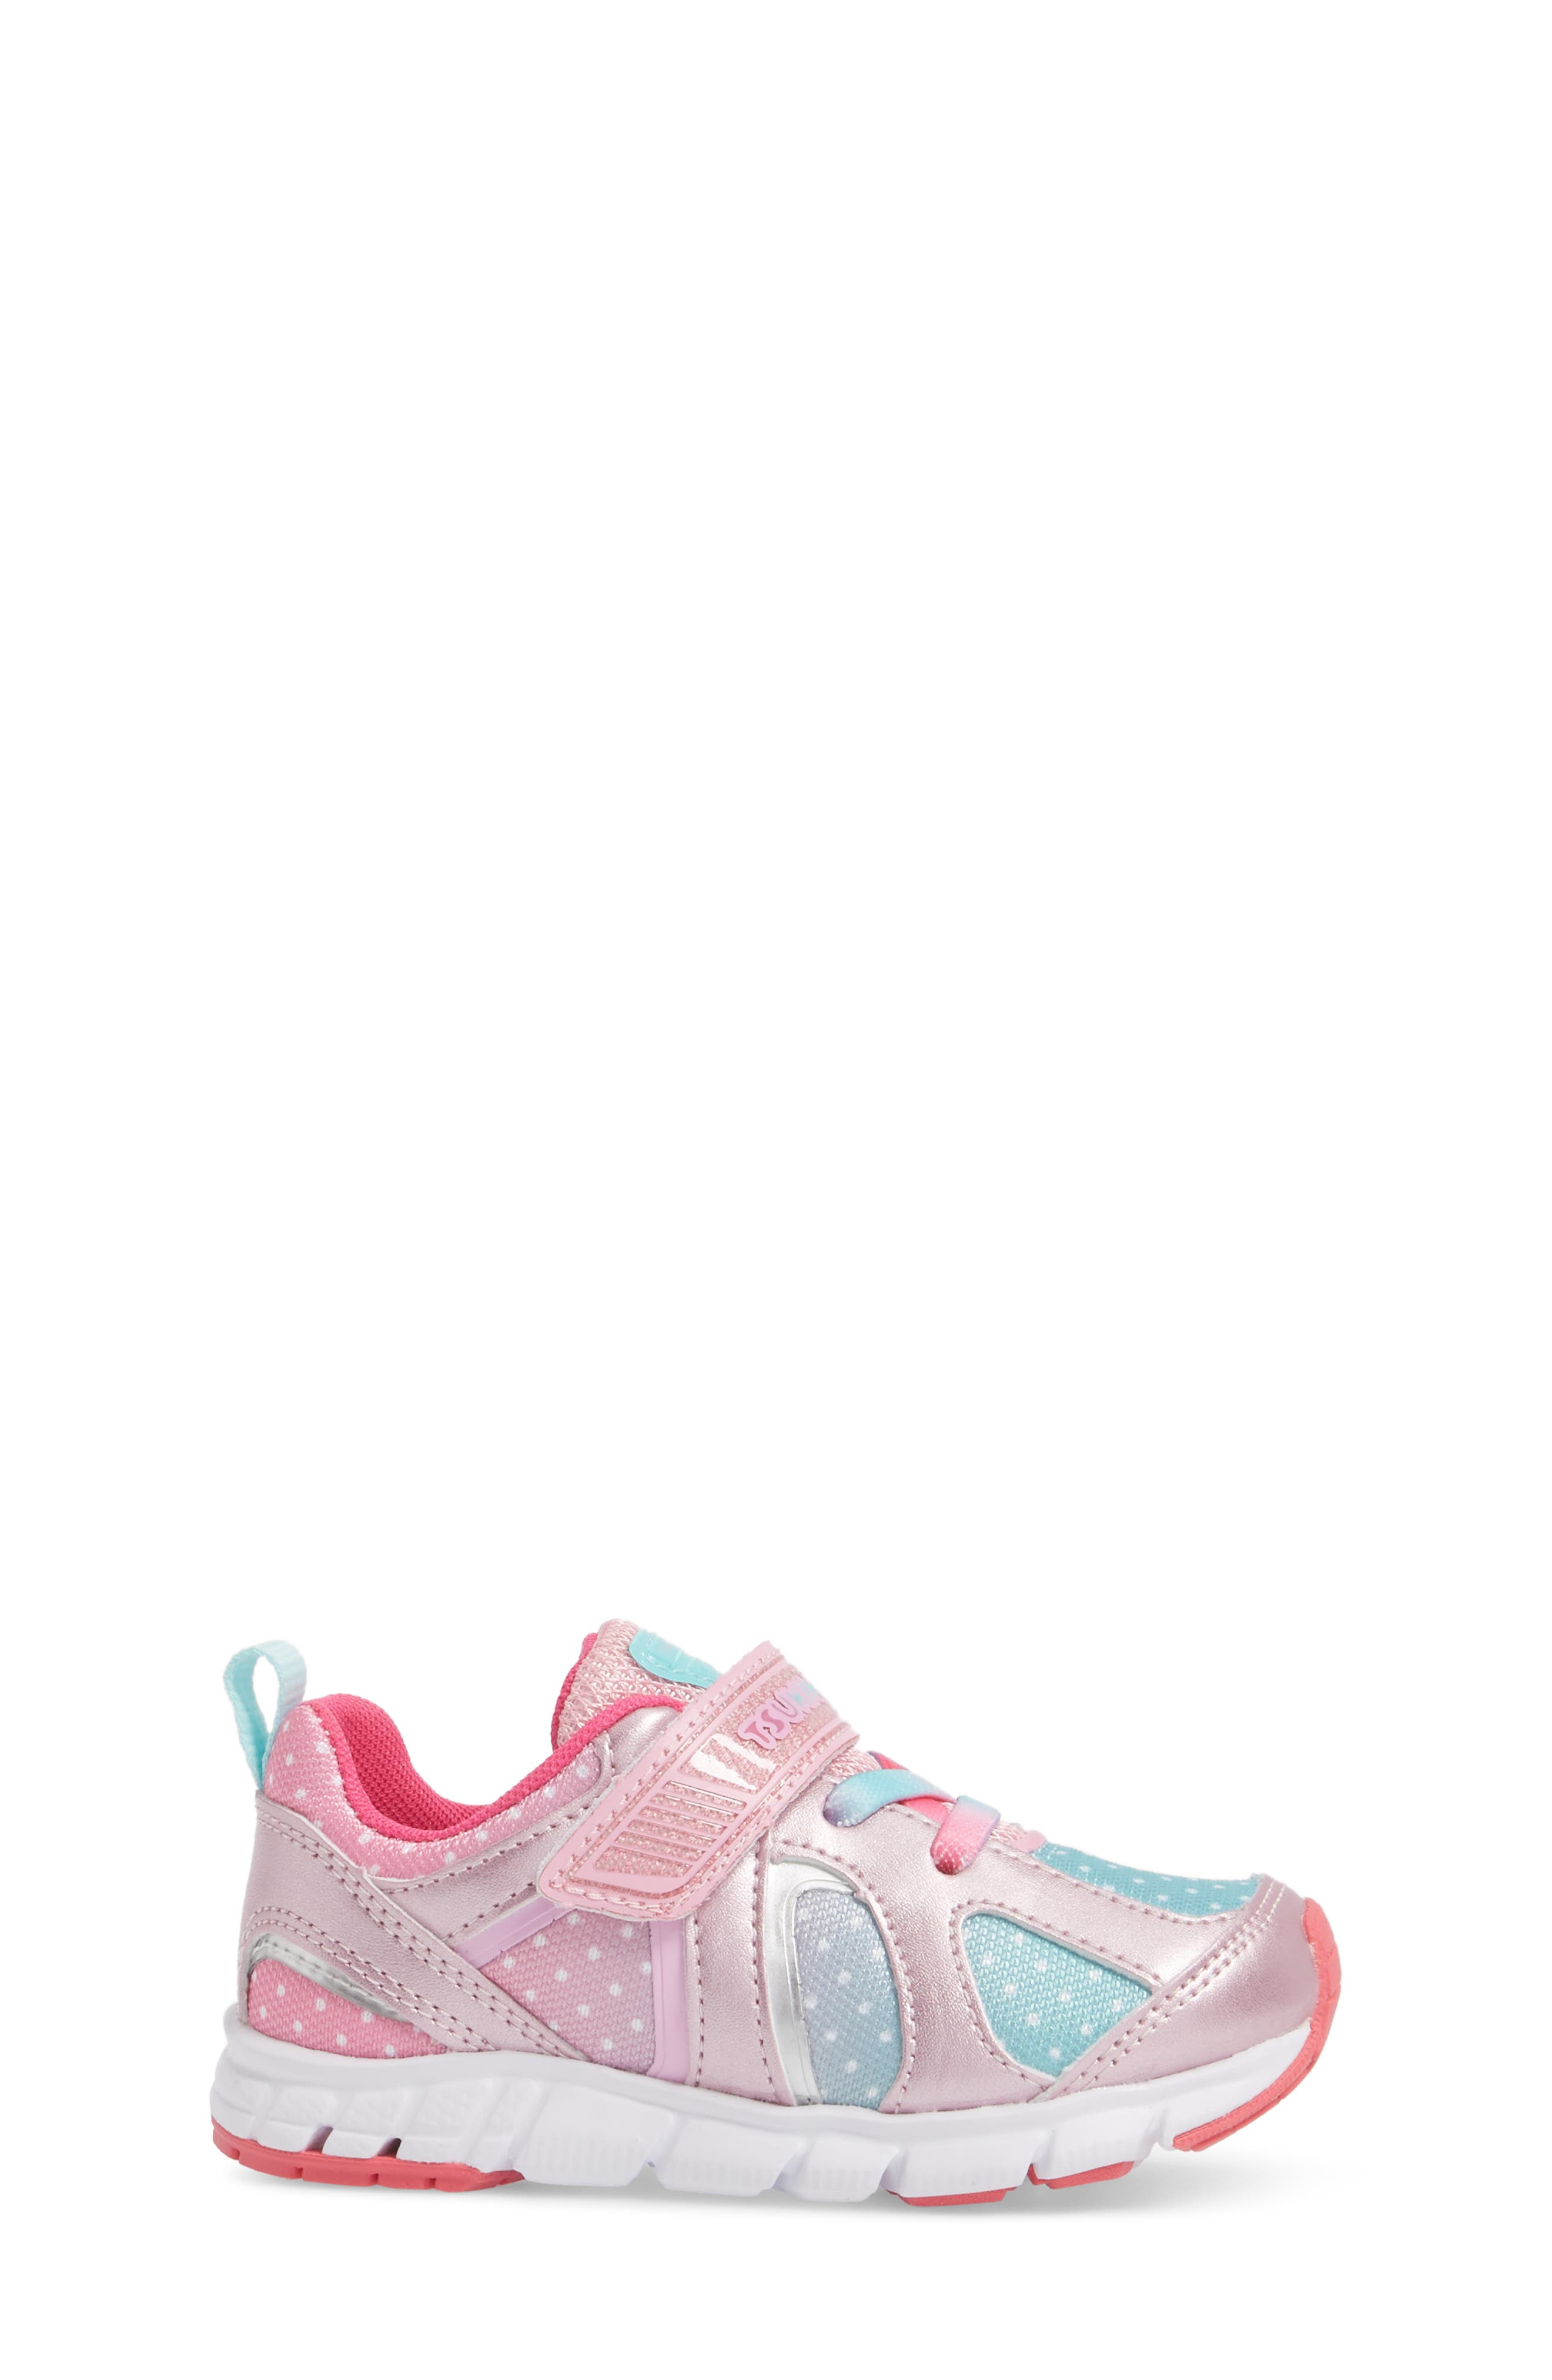 Rainbow Washable Sneaker,                             Alternate thumbnail 3, color,                             Rose/ Mint